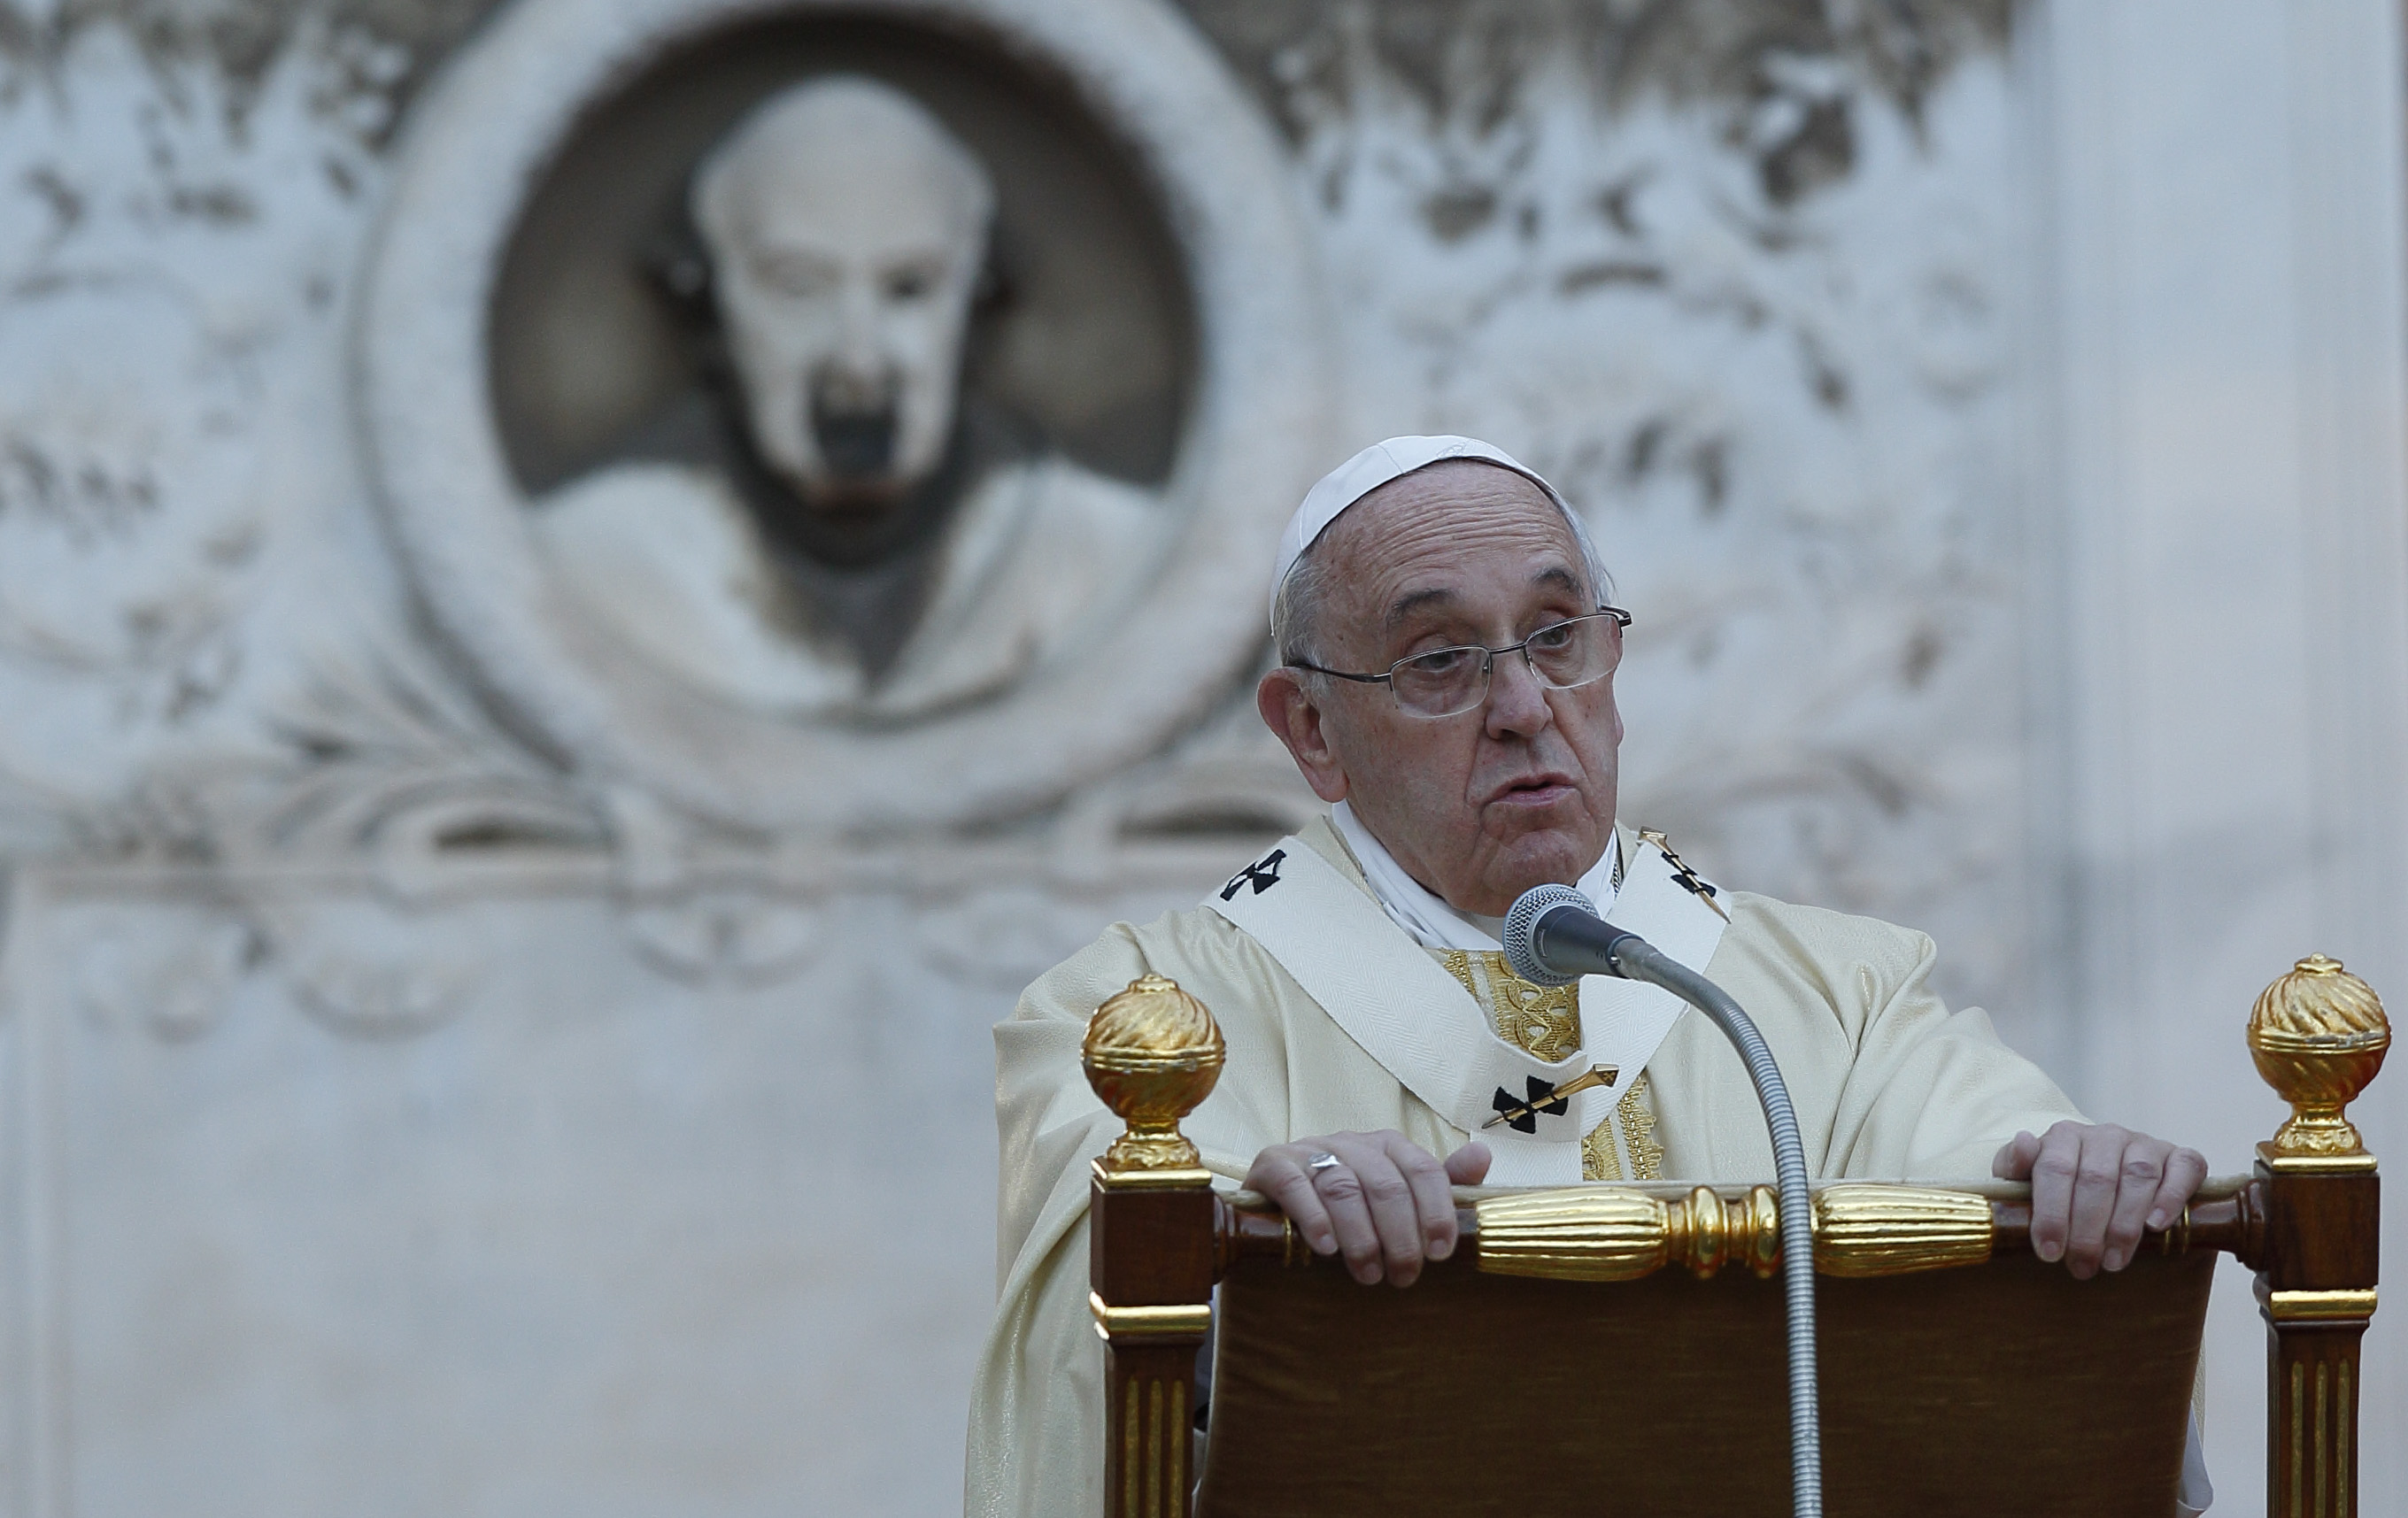 pope francis revises resignation norms for bishops and cardinals